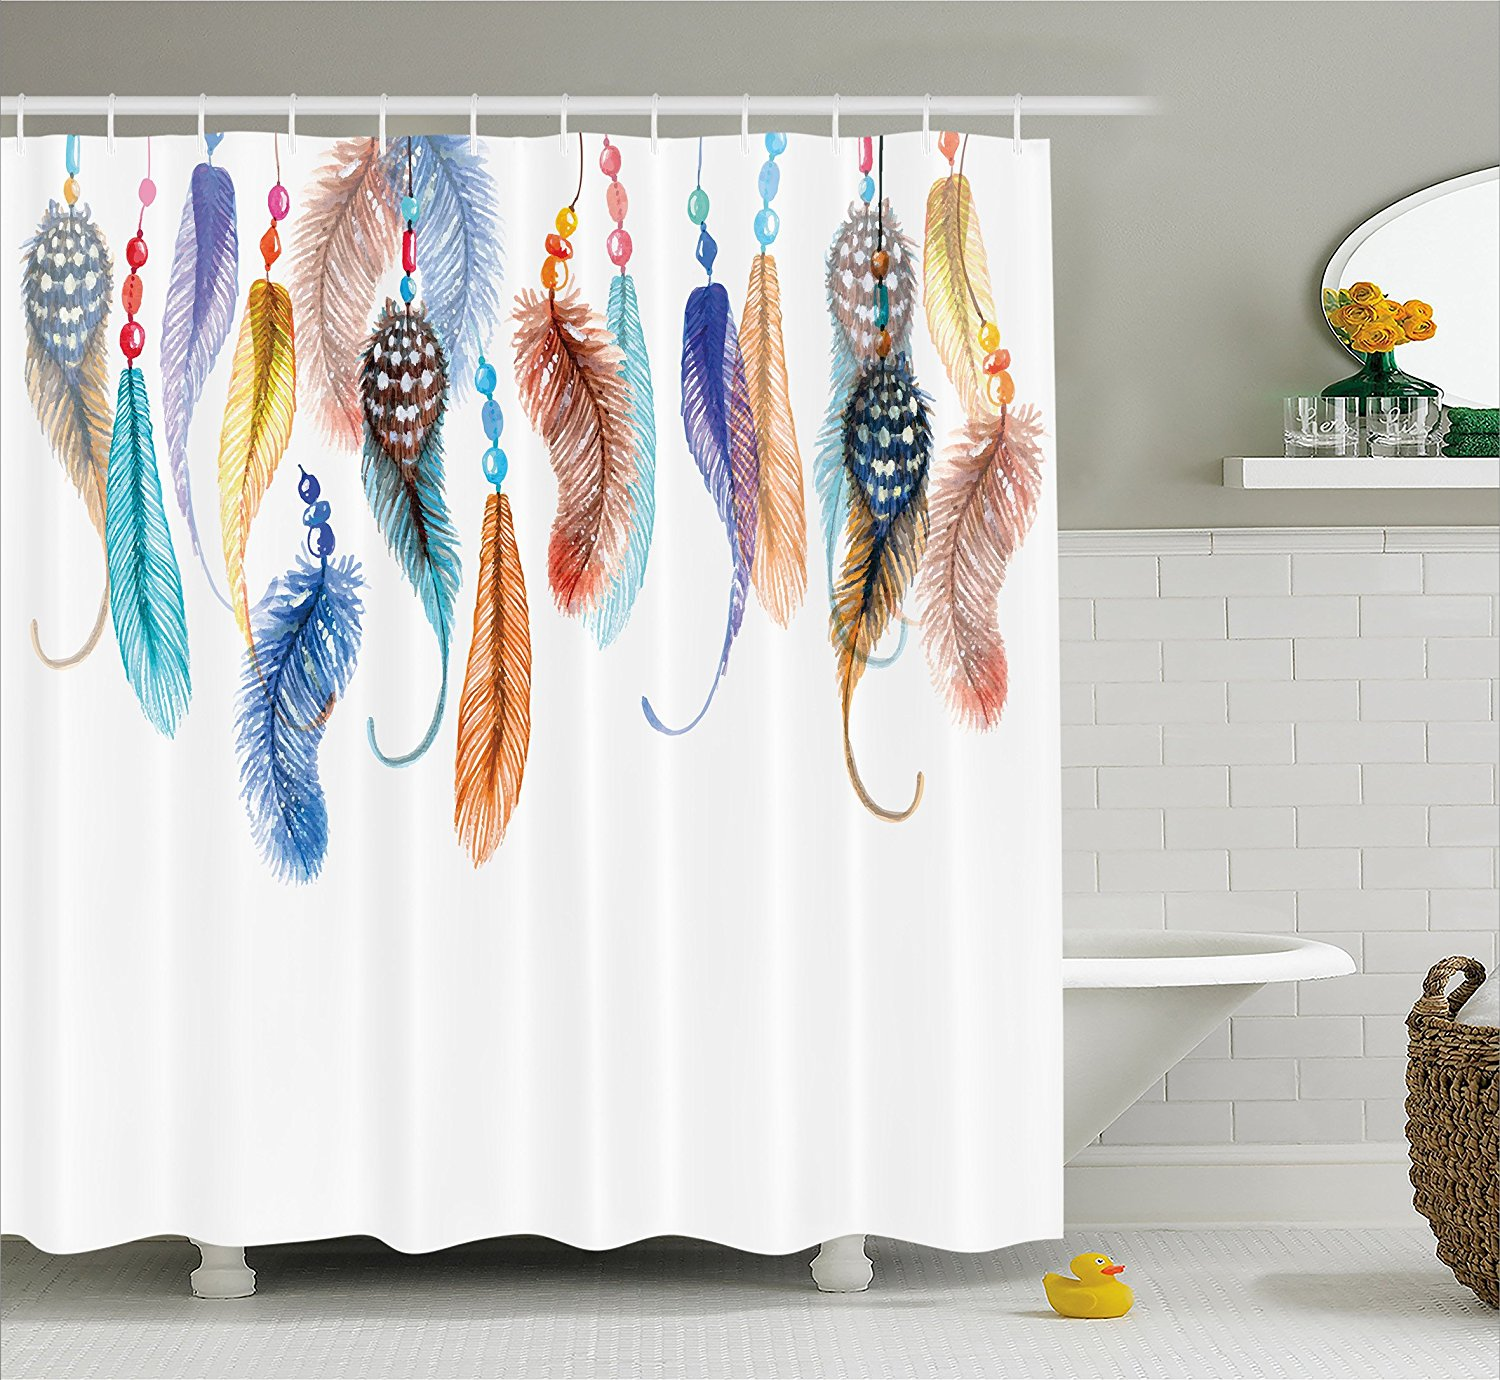 Feather House Decor Shower Curtain Primitive Hippie With South Western Dove Eagle Hawk Raven Feathers Artwork In Shower Curtains From Home Garden